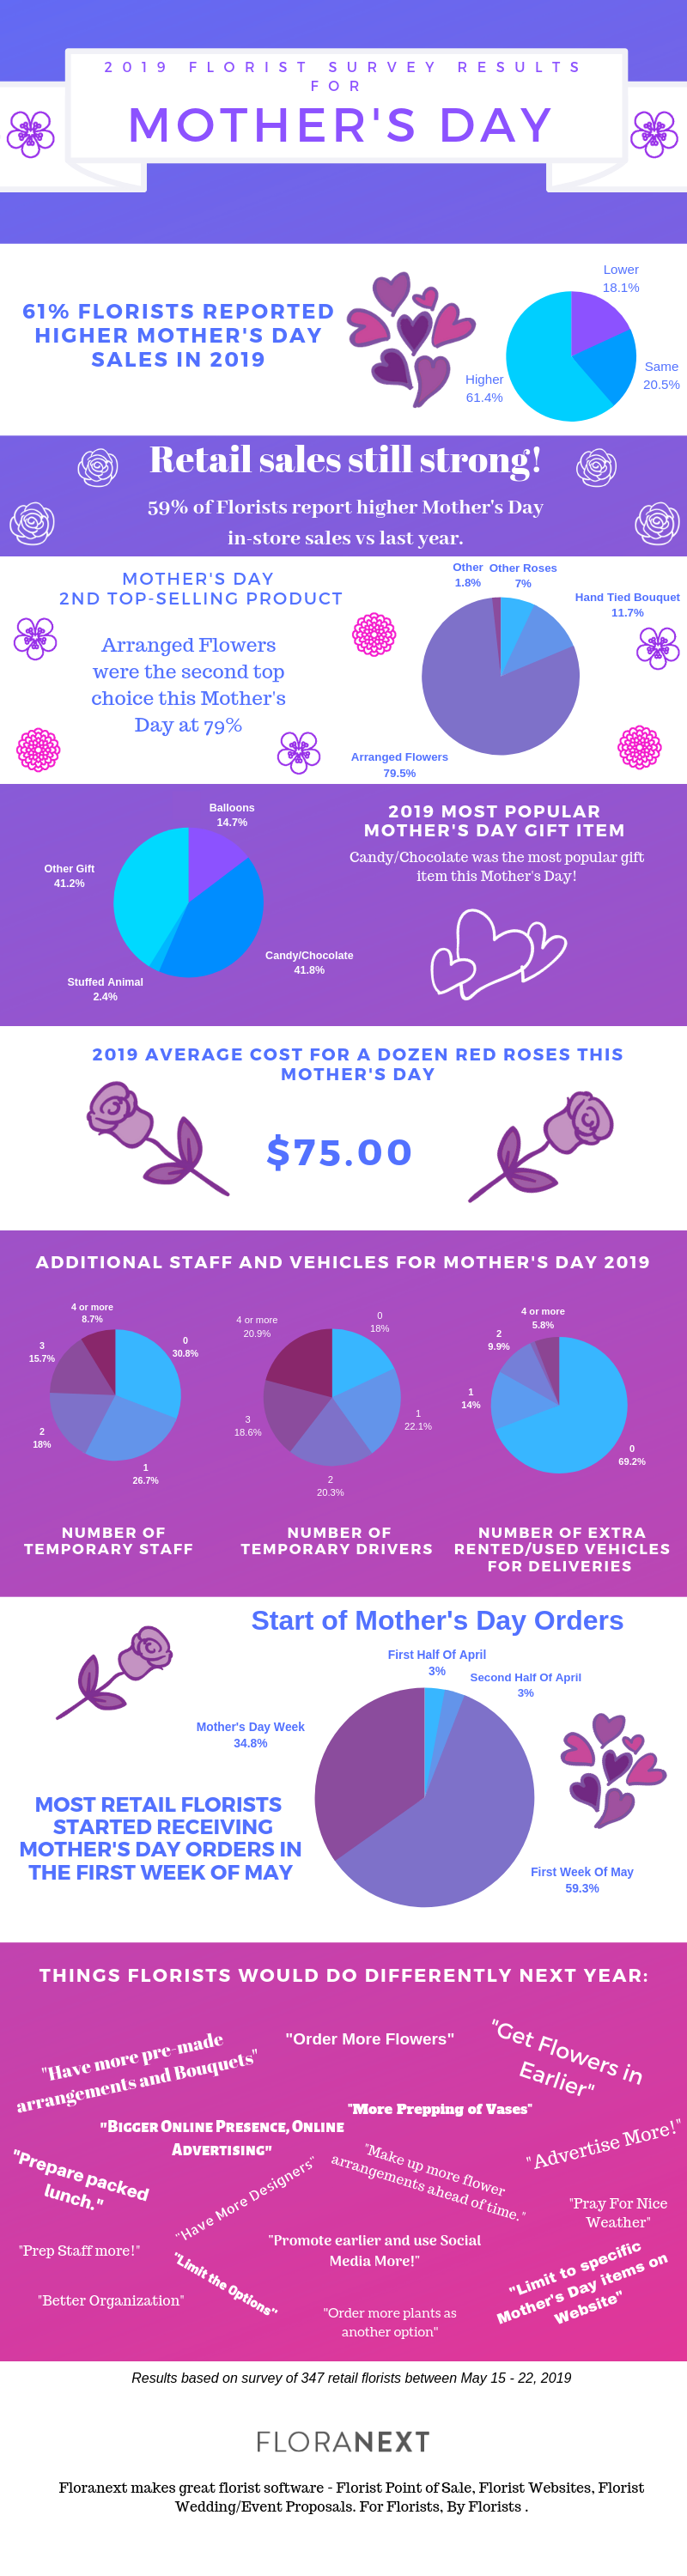 2019 Florist Survey Results for MDAY - final